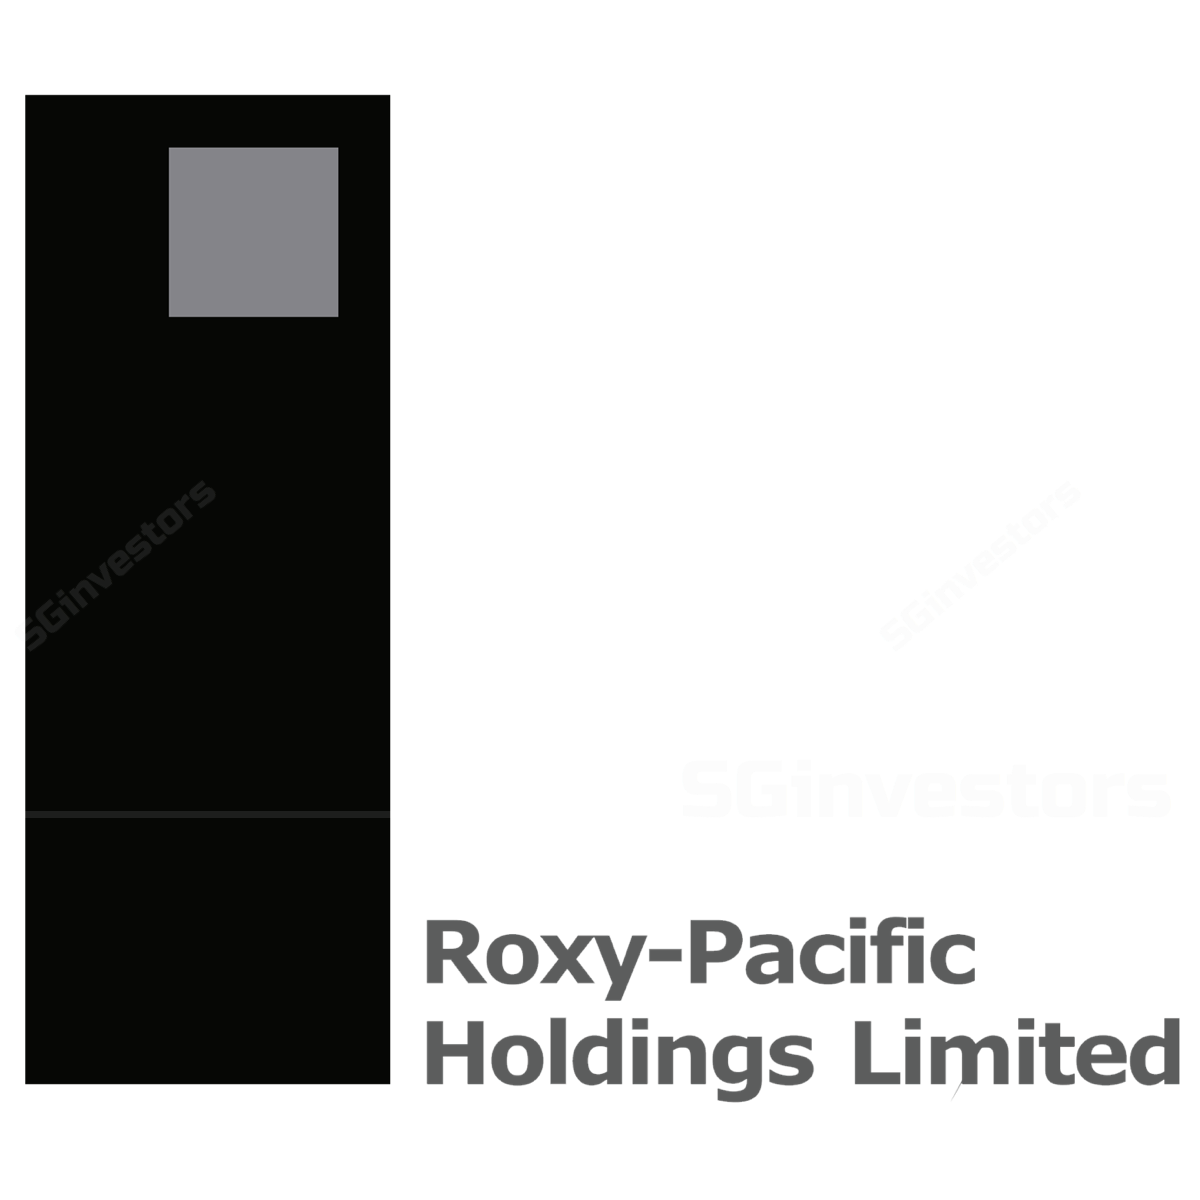 Roxy-Pacific Holdings - DBS Group Research Research 2018-07-06: Back To The Drawing Board